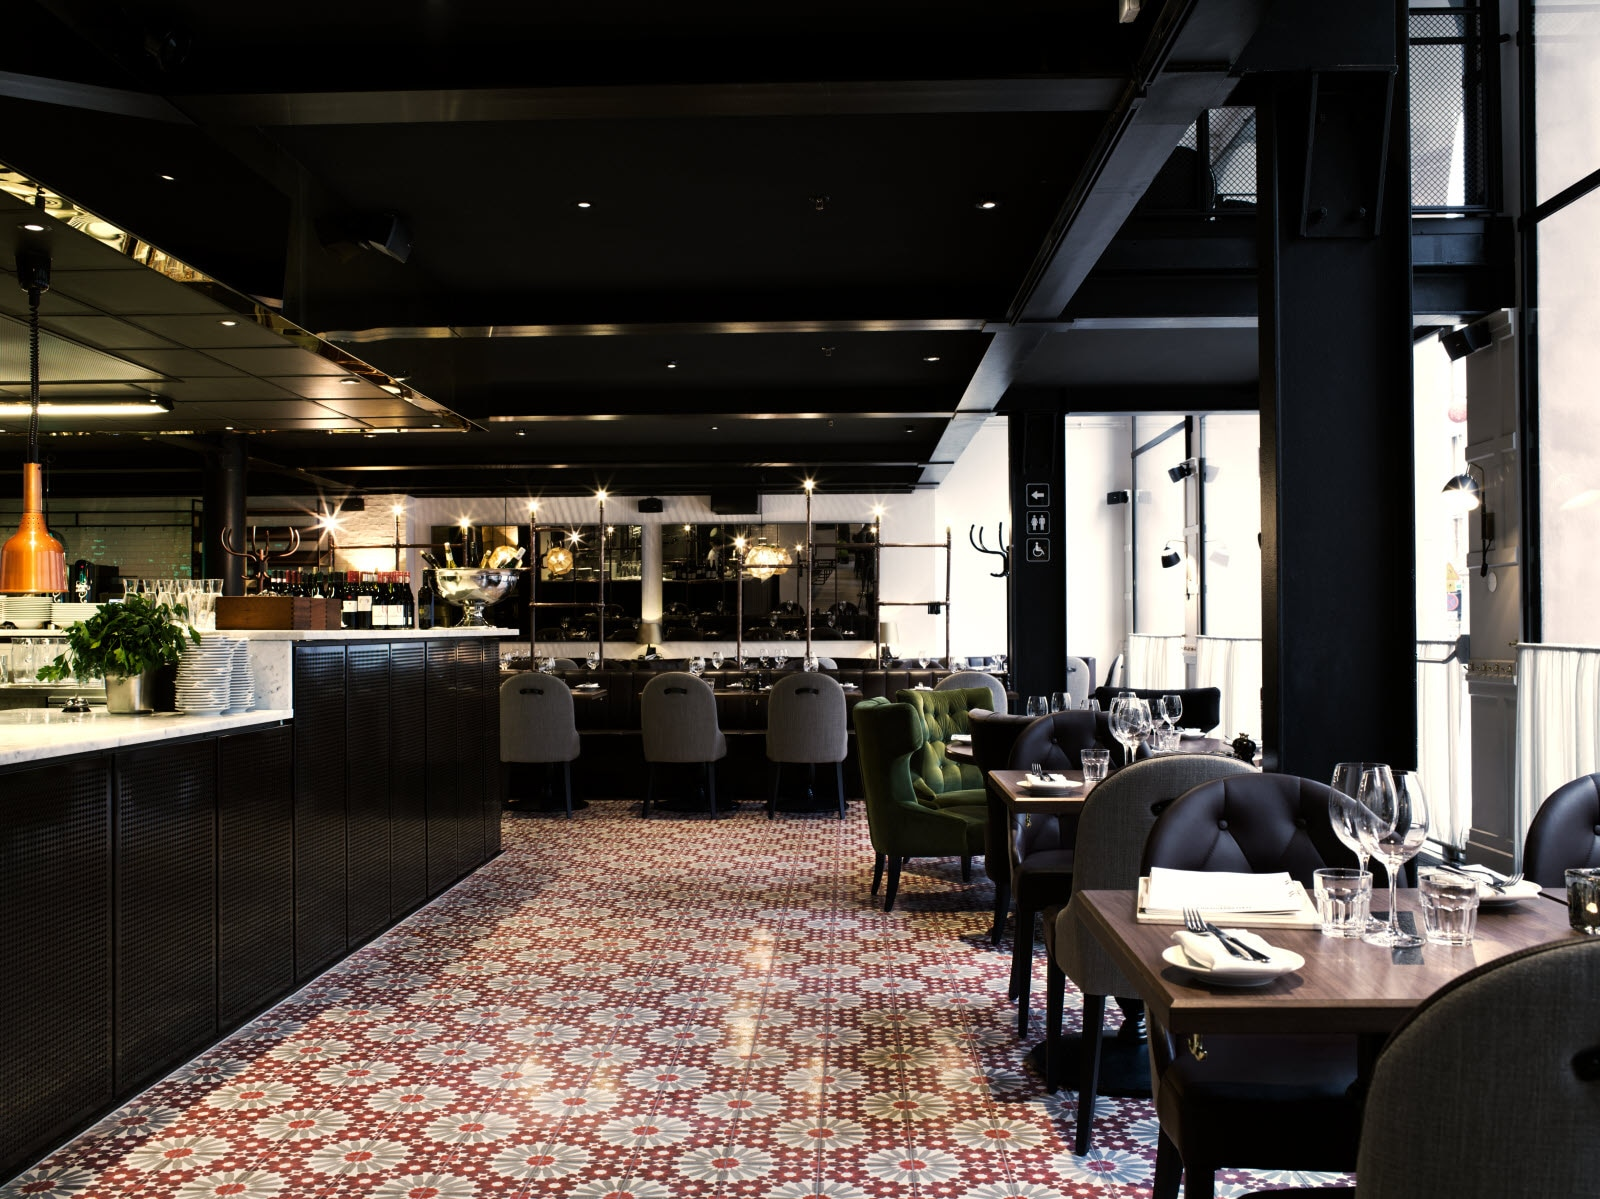 Scandic-Grand-Central-Interior-teaterbrasseriet-3.jpg